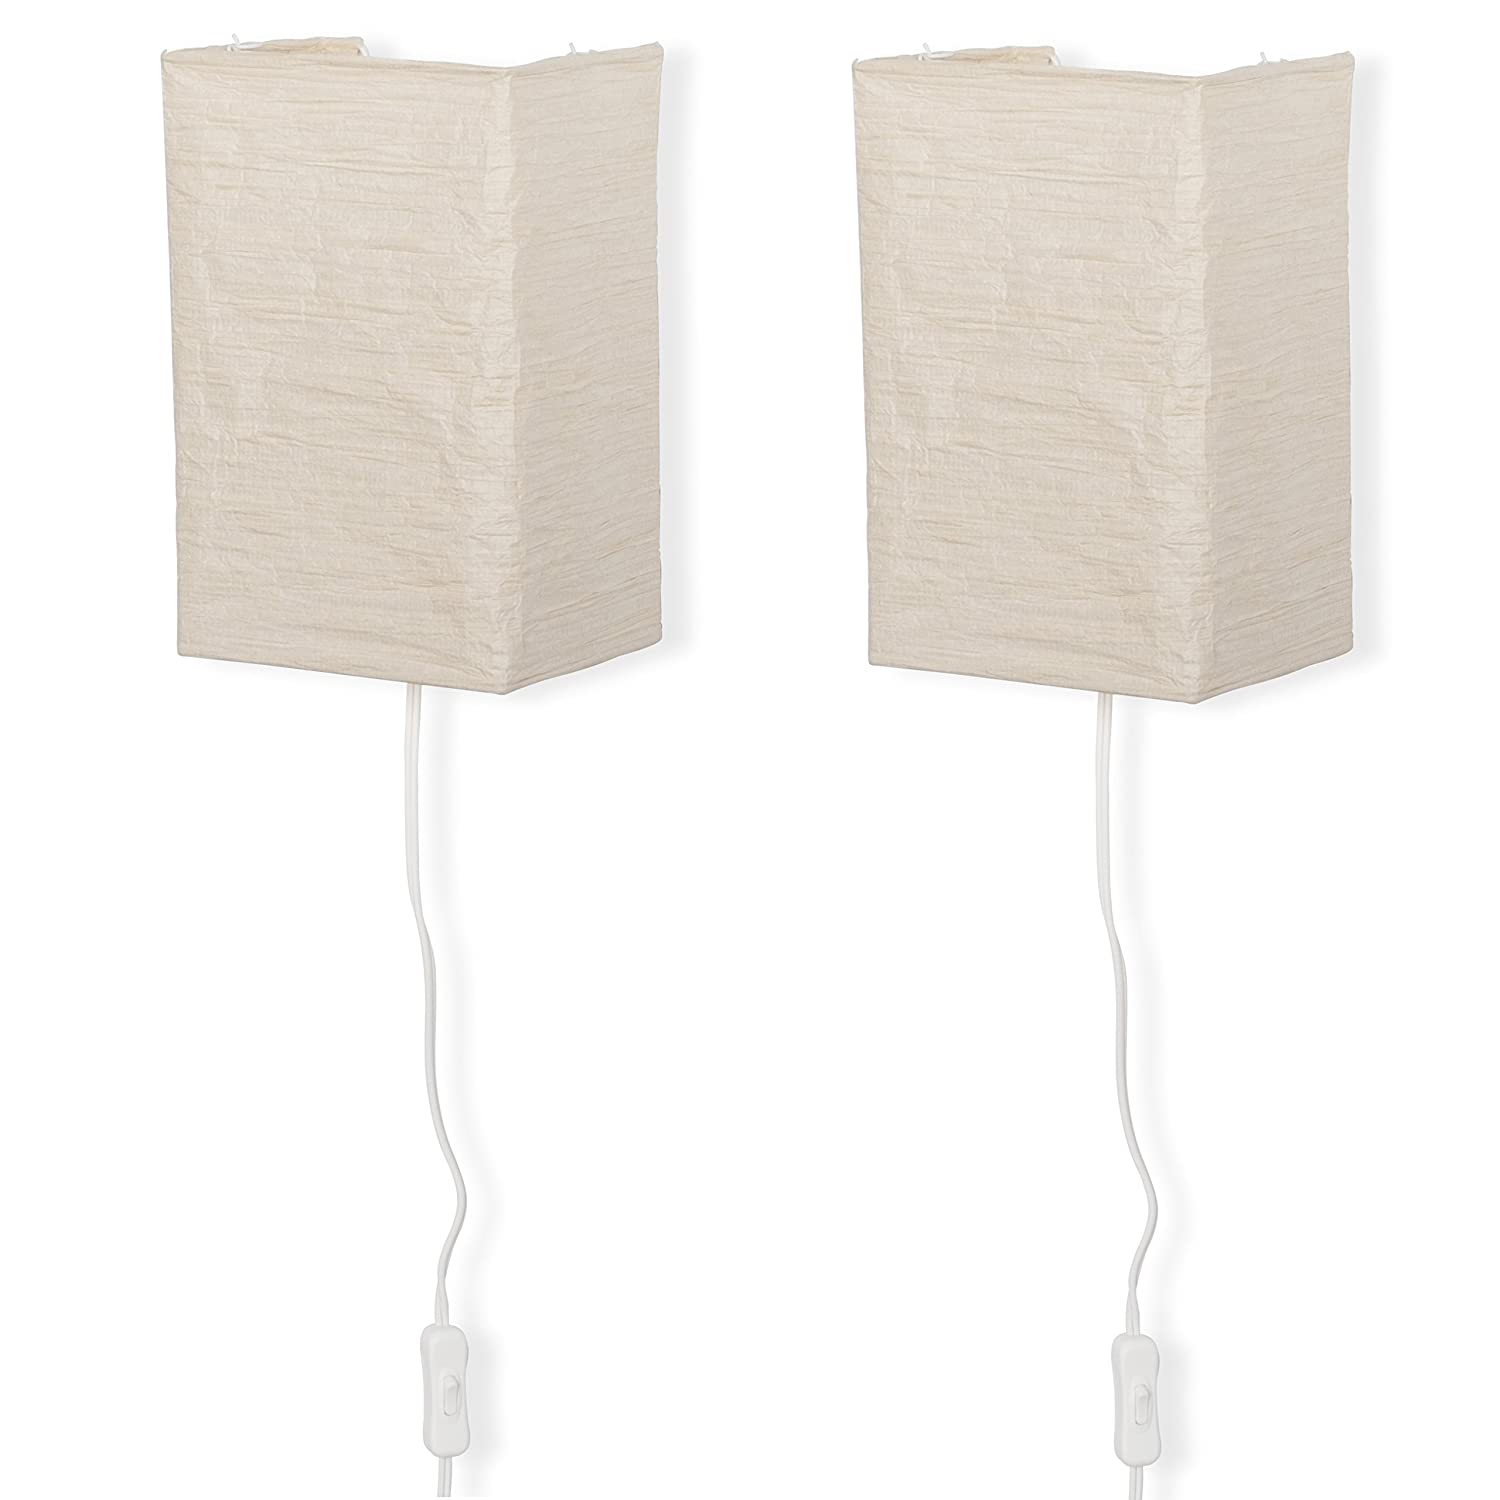 Wallniture Rice Paper Wall Mount Lamp Sconce with Toggle Switch Chandelier Light Bulbs Included Cream Set of 2 …